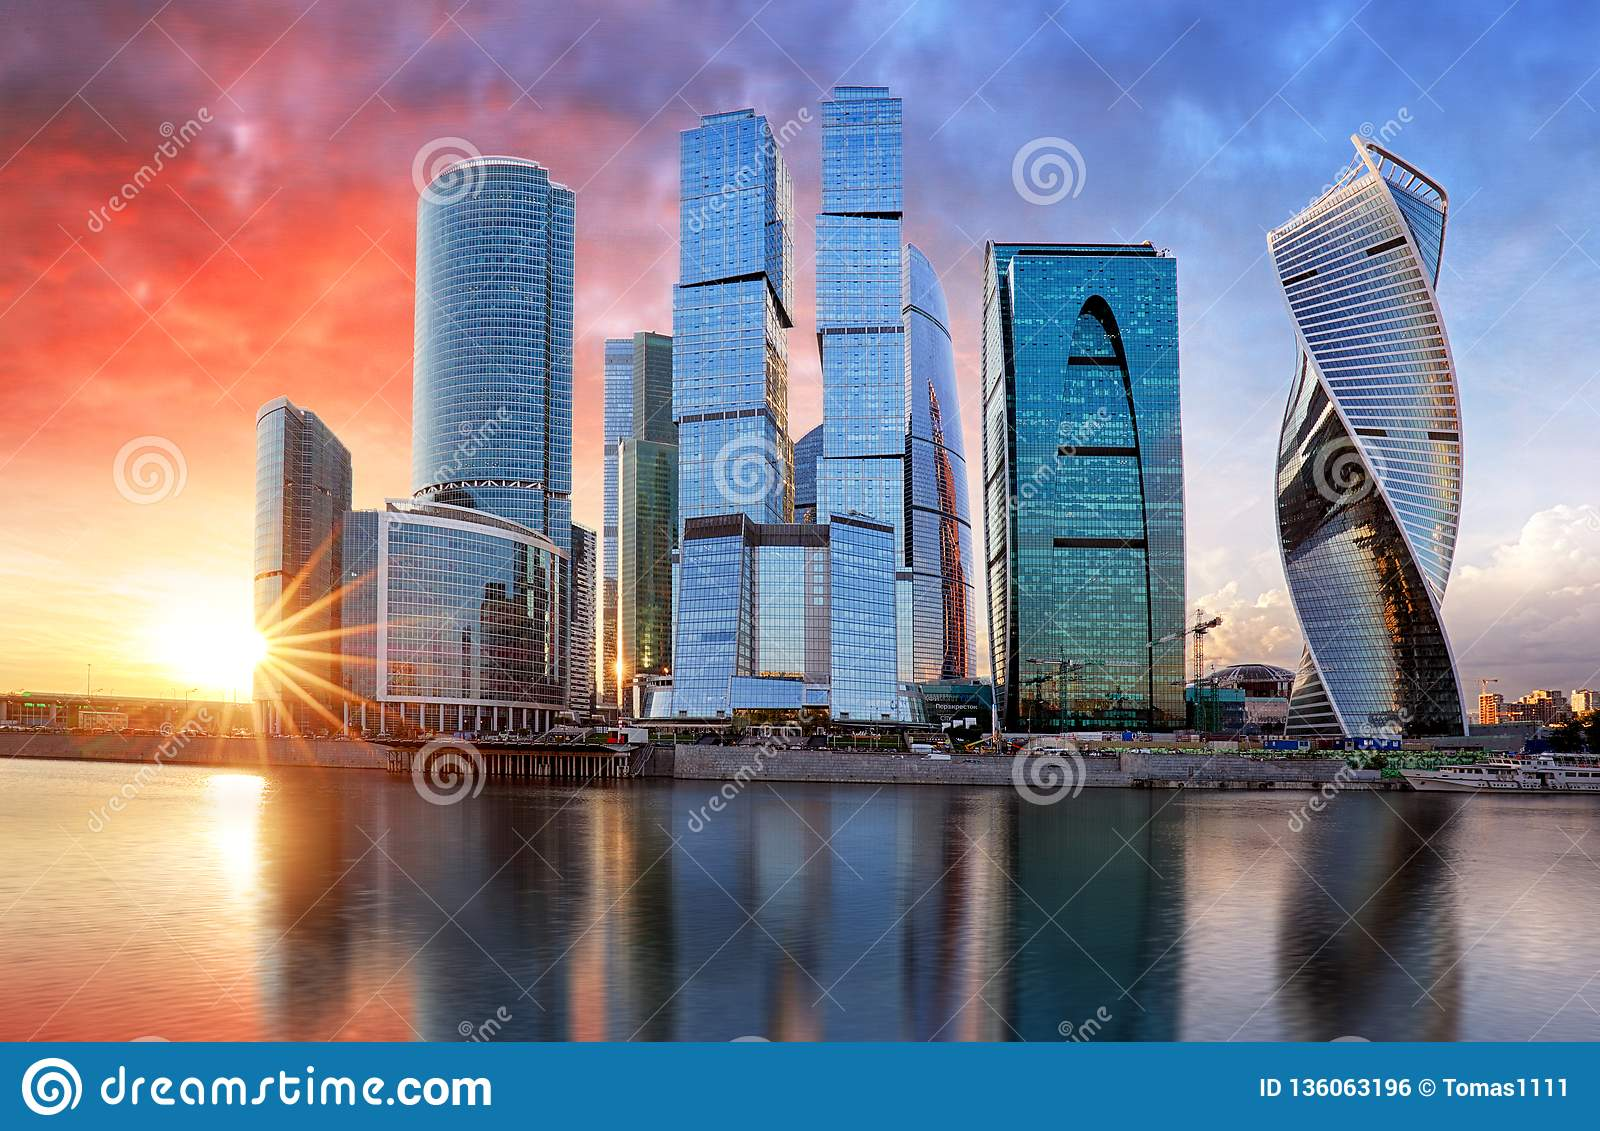 Moscow city, Russia. Moscow International Business Center at sunset